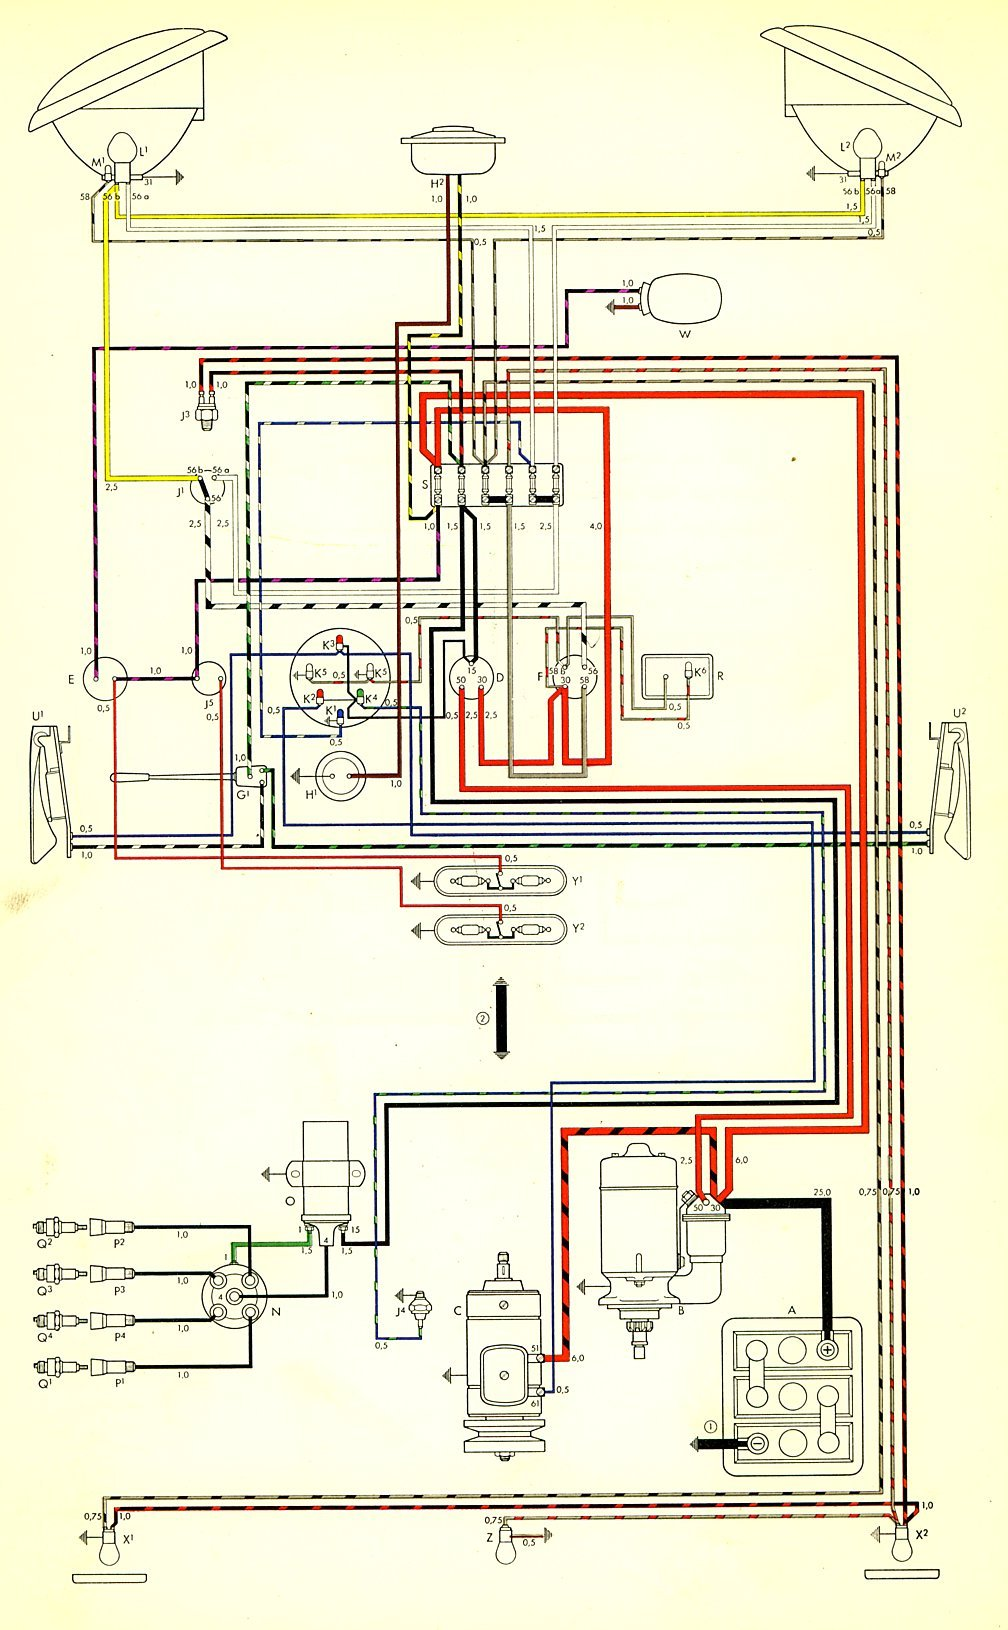 vw wire diagram vw generator wiring diagram vw image wiring diagram Ford Aerostar Wiring Diagram on 1937 ford wiring diagram, ford flex wiring diagram, ford thunderbird wiring diagram, ford electrical diagram, ford radio wiring diagram, ford aerostar air conditioning diagram, ford aerostar suspension diagram, ford aerostar fuel pump, ford f350 super duty wiring diagram, ford econoline van wiring diagram, ford granada wiring diagram, ford fairlane wiring diagram, ford 500 wiring diagram, ford aerostar 4x4 conversion, ford expedition wiring-diagram, ford aspire wiring diagram, ford aerostar parts diagram, ford aerostar firing order, ford aerostar fuel diagram, ford aerostar drive shaft,